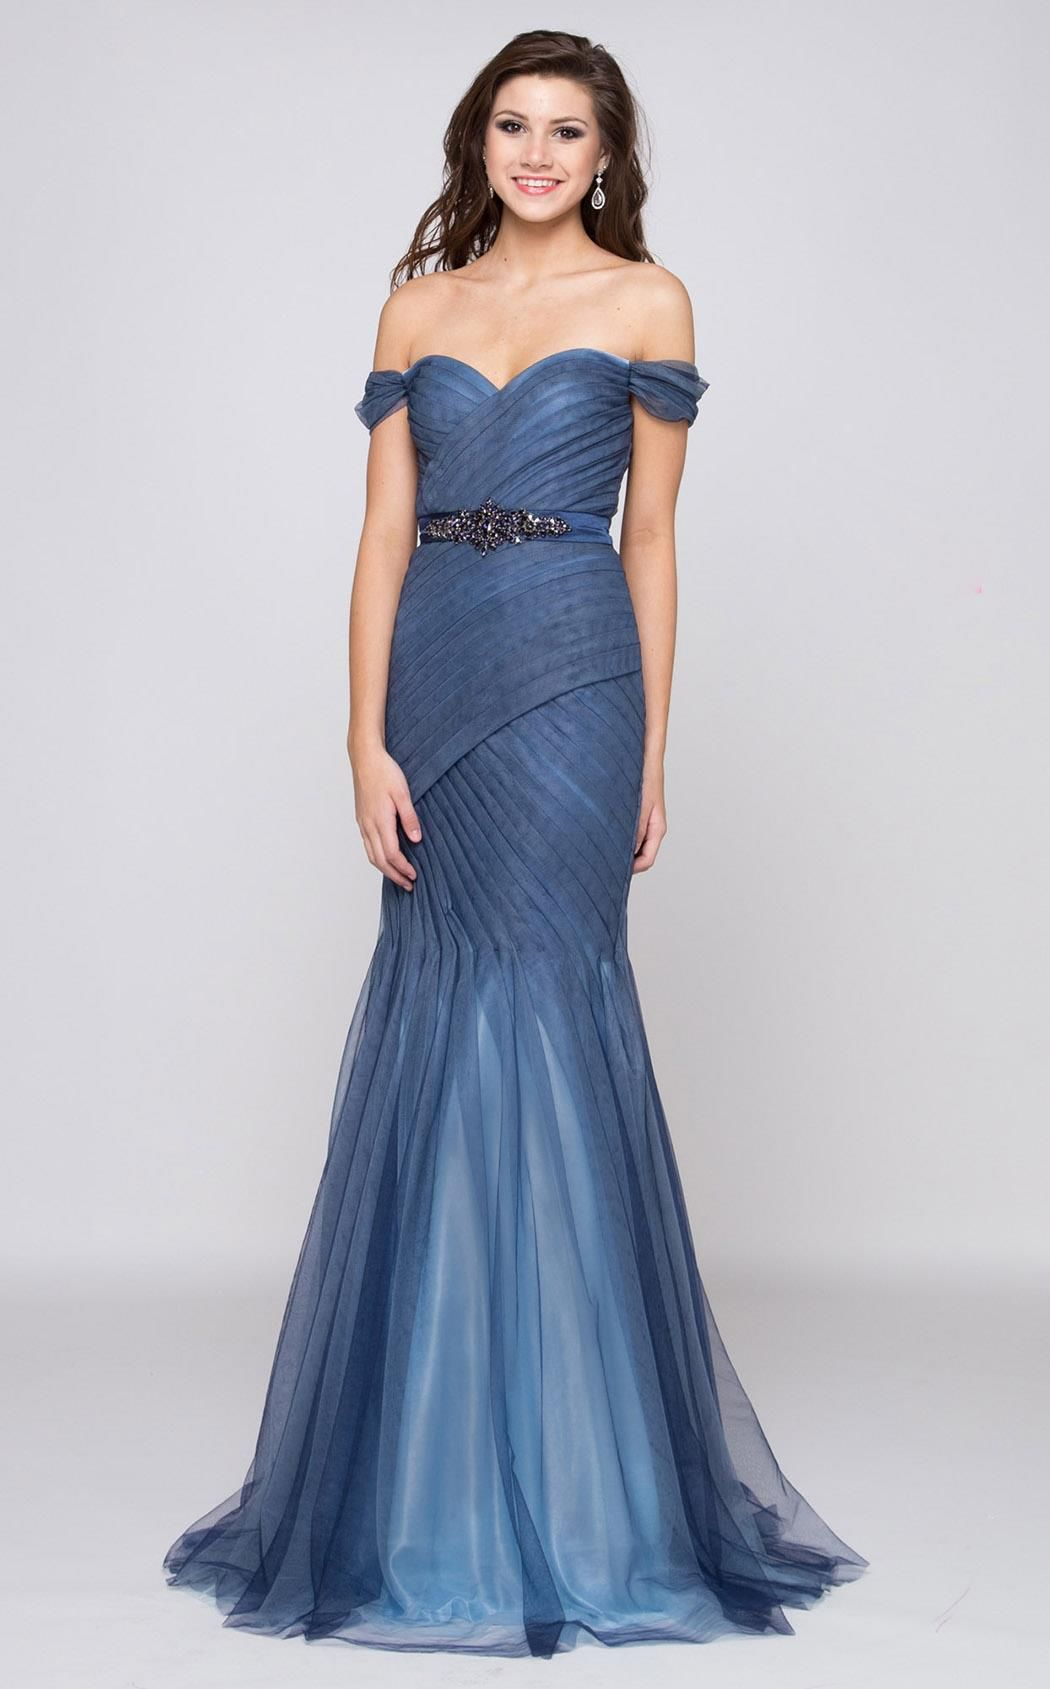 Marsoni M184 | Mermaid evening gown, Hemline and Gowns